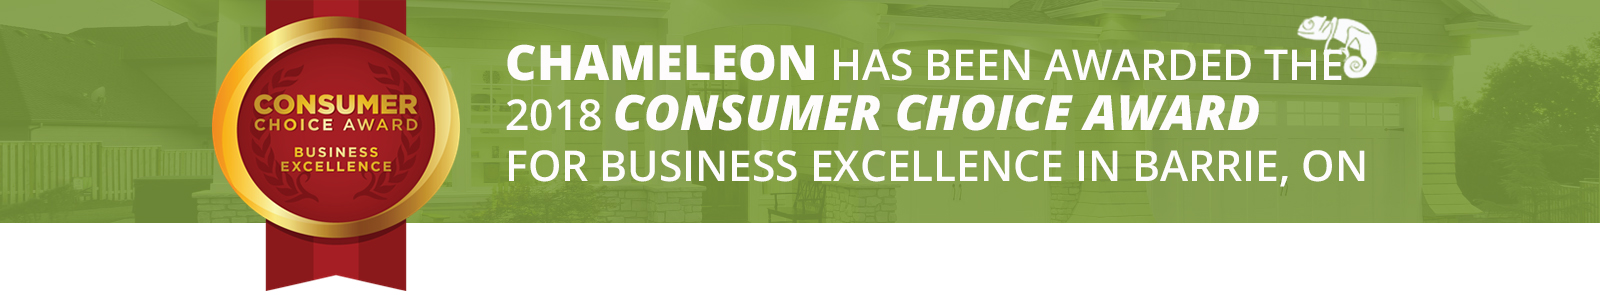 Chameleon has been awarded the 2018 consumer choice award for business excellence in Barrie, ON